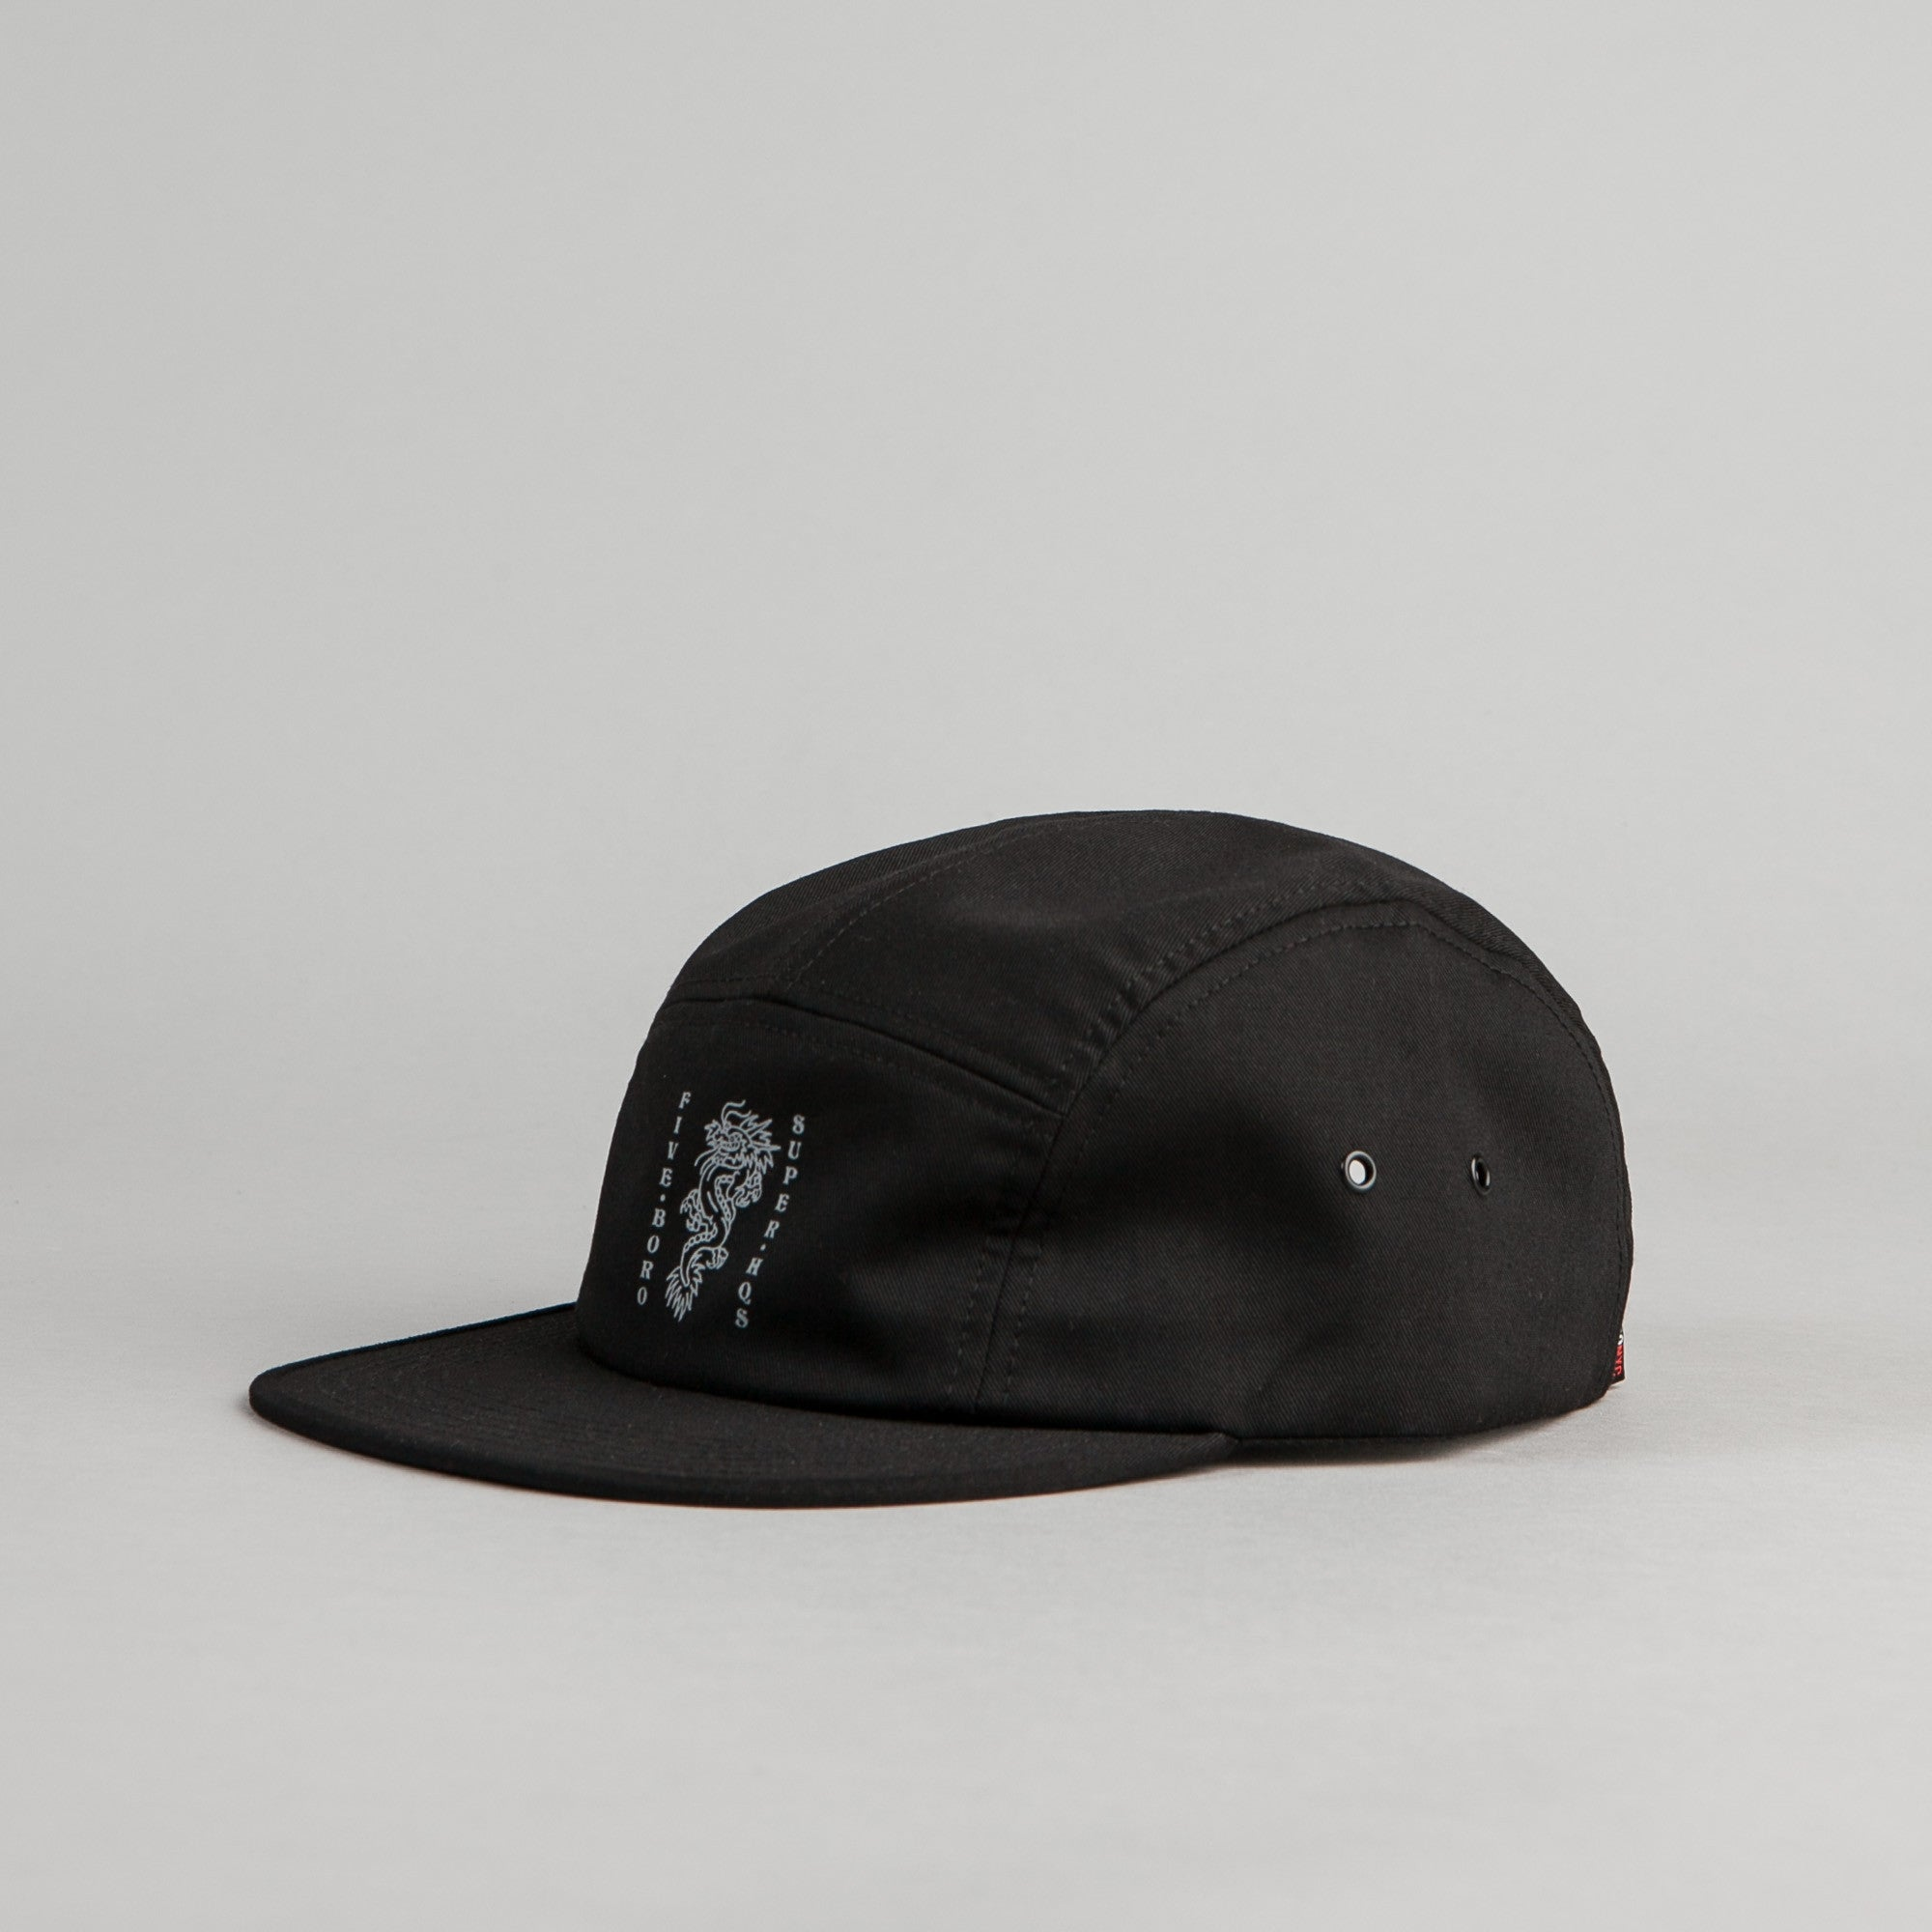 5Boro 5B Dragon 5 Panel Cap - Black